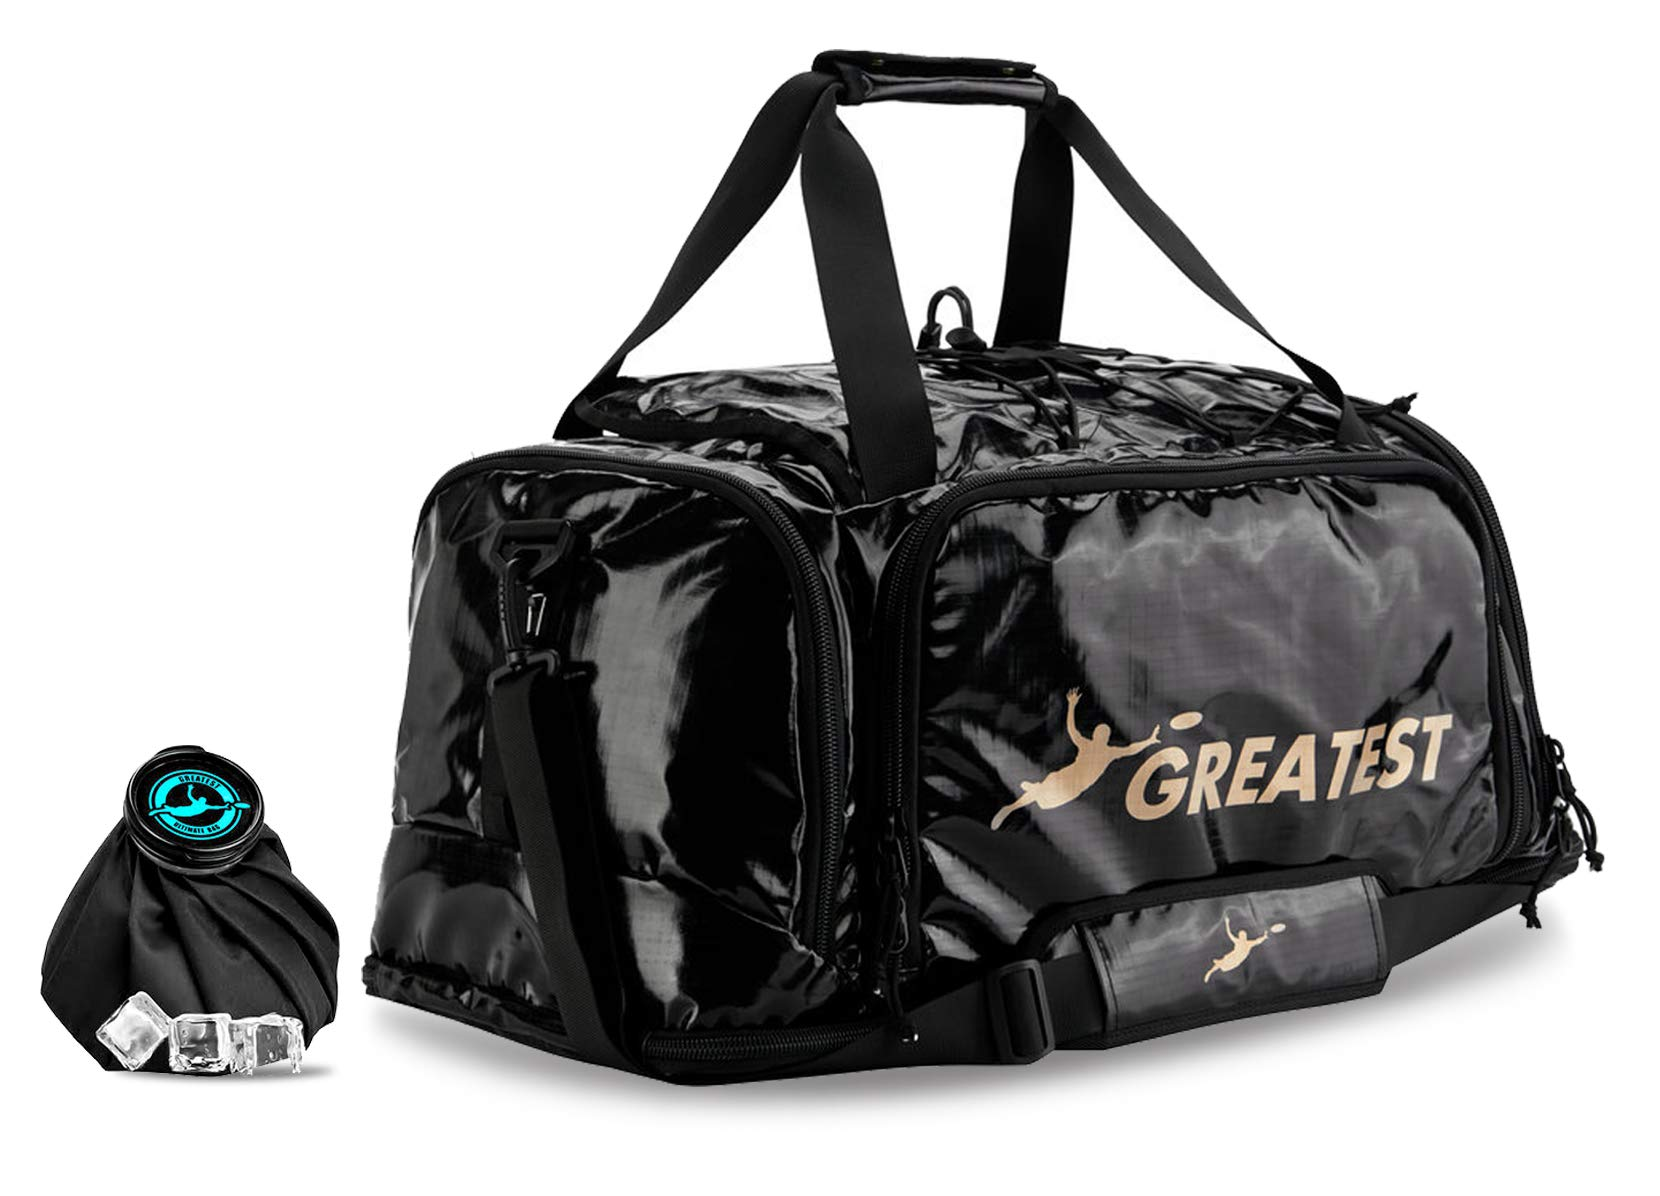 GREATEST Ultimate Bag 60 Liter - #1 World's Ultimate Frisbee Bag. Built in Insulated Cooler Compartment and Organization System. Also Perfect Sports Duffel Bag for Other Outdoor Sports (GOLD) by GREATEST